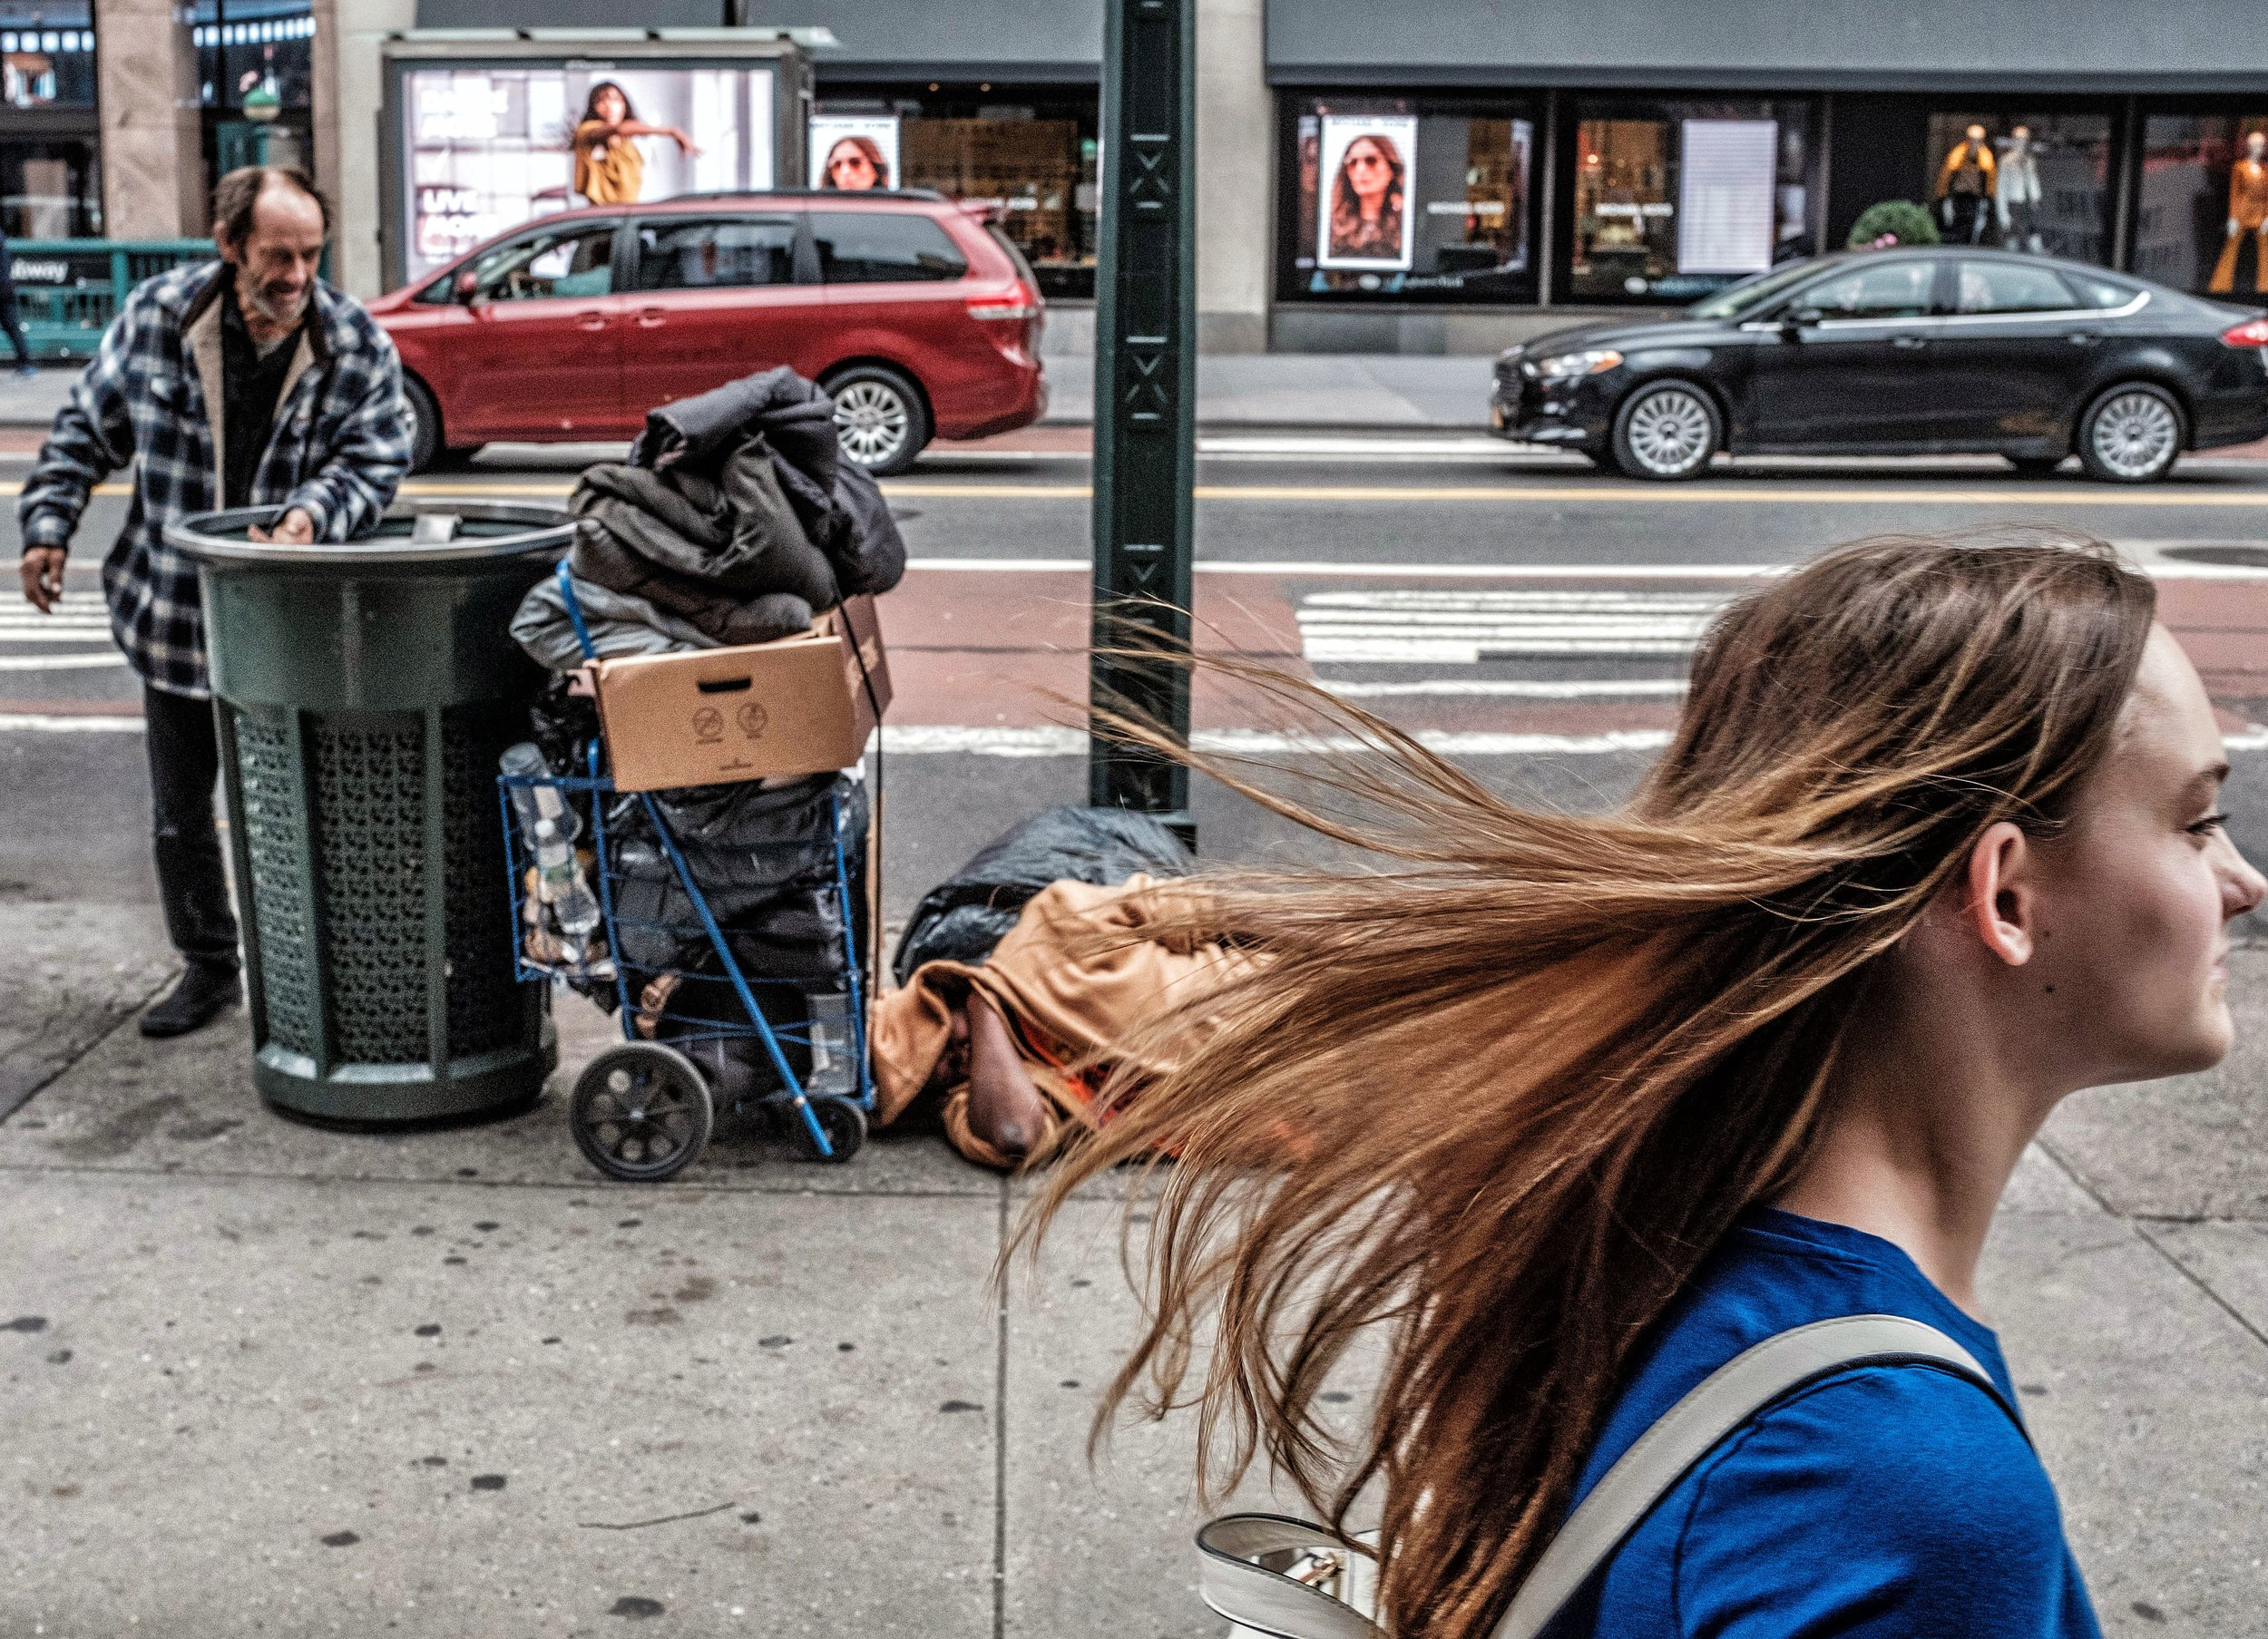 Street Photography and the Homeless - by Michael Kennedy